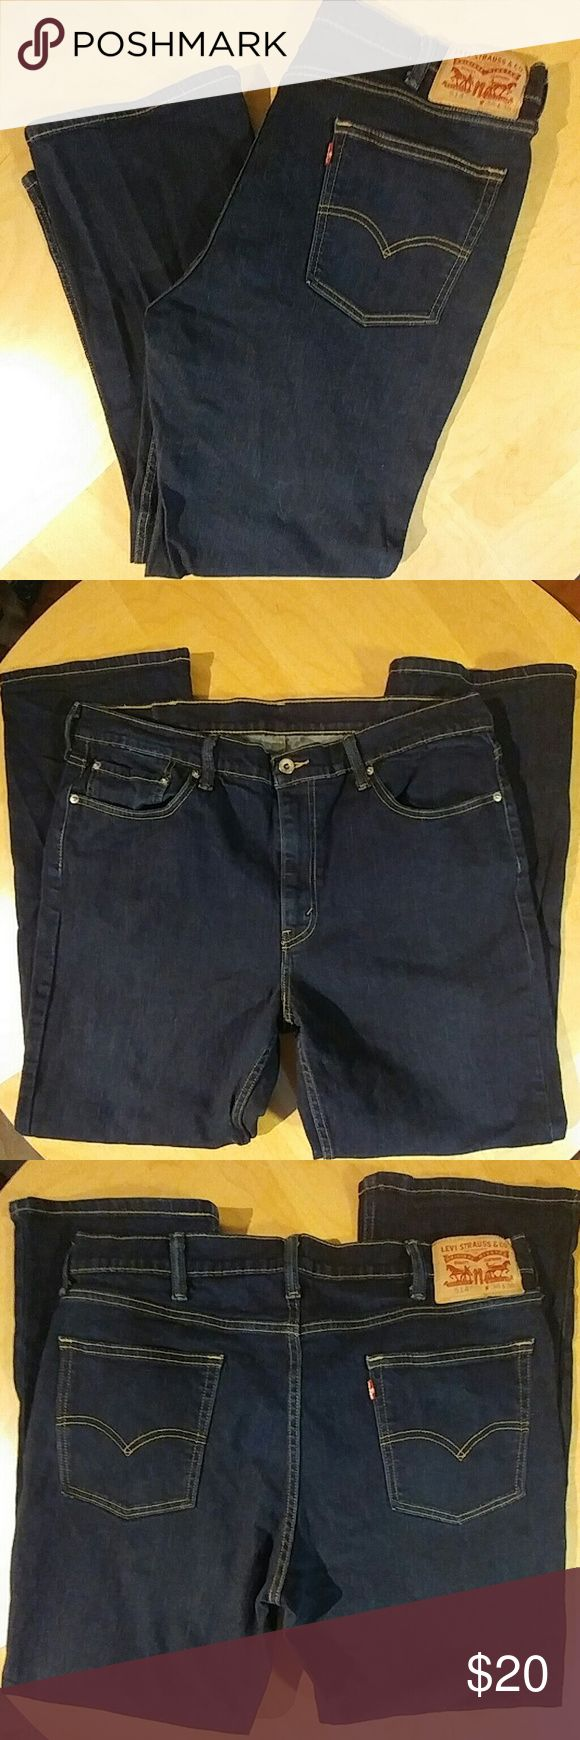 LEVI'S 514 STRETCH FIT STRETCHY MATERIAL. 38X30 Levi's Jeans